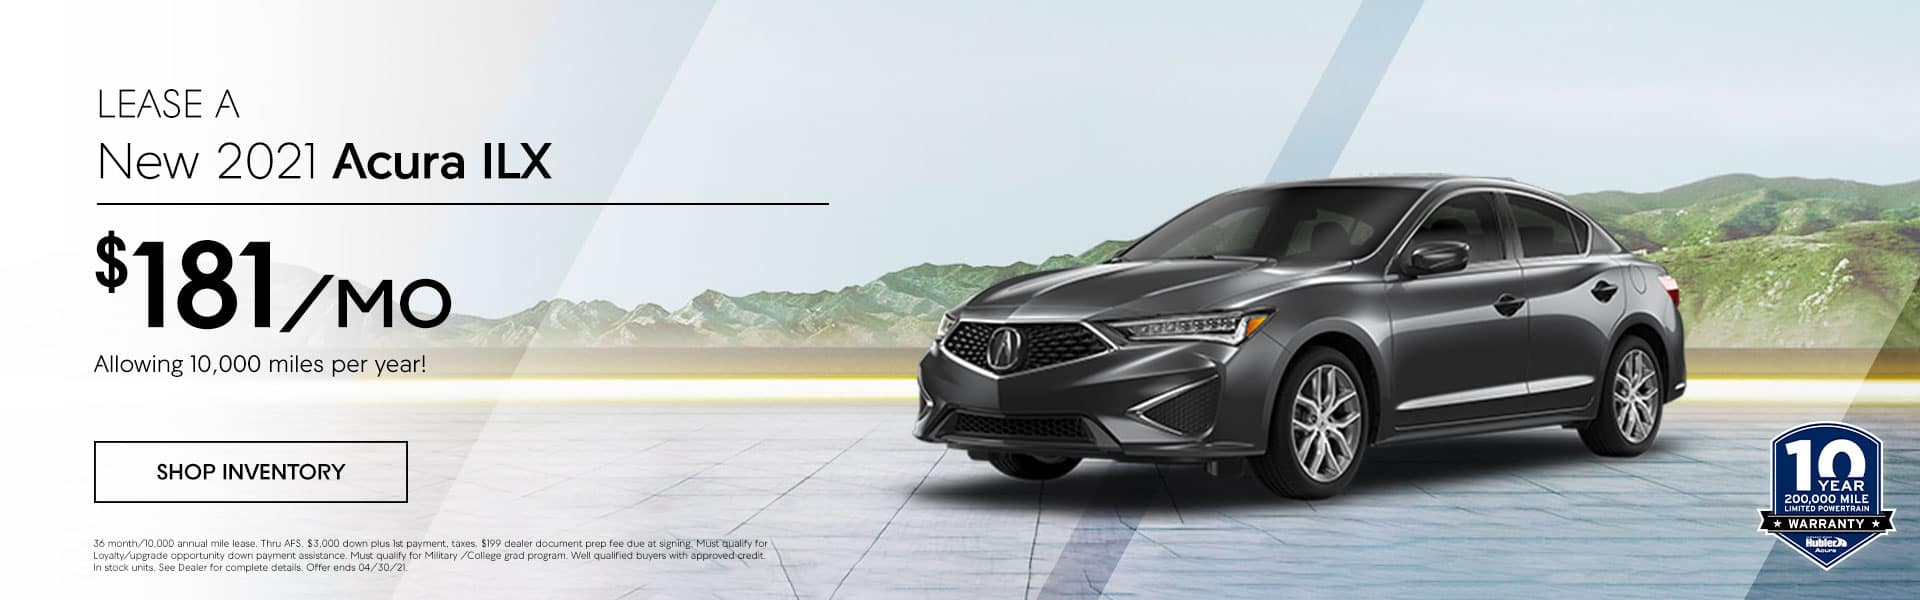 2021 Acura ILX just $ 181.00 per month, Allowing 10,000 miles per year!